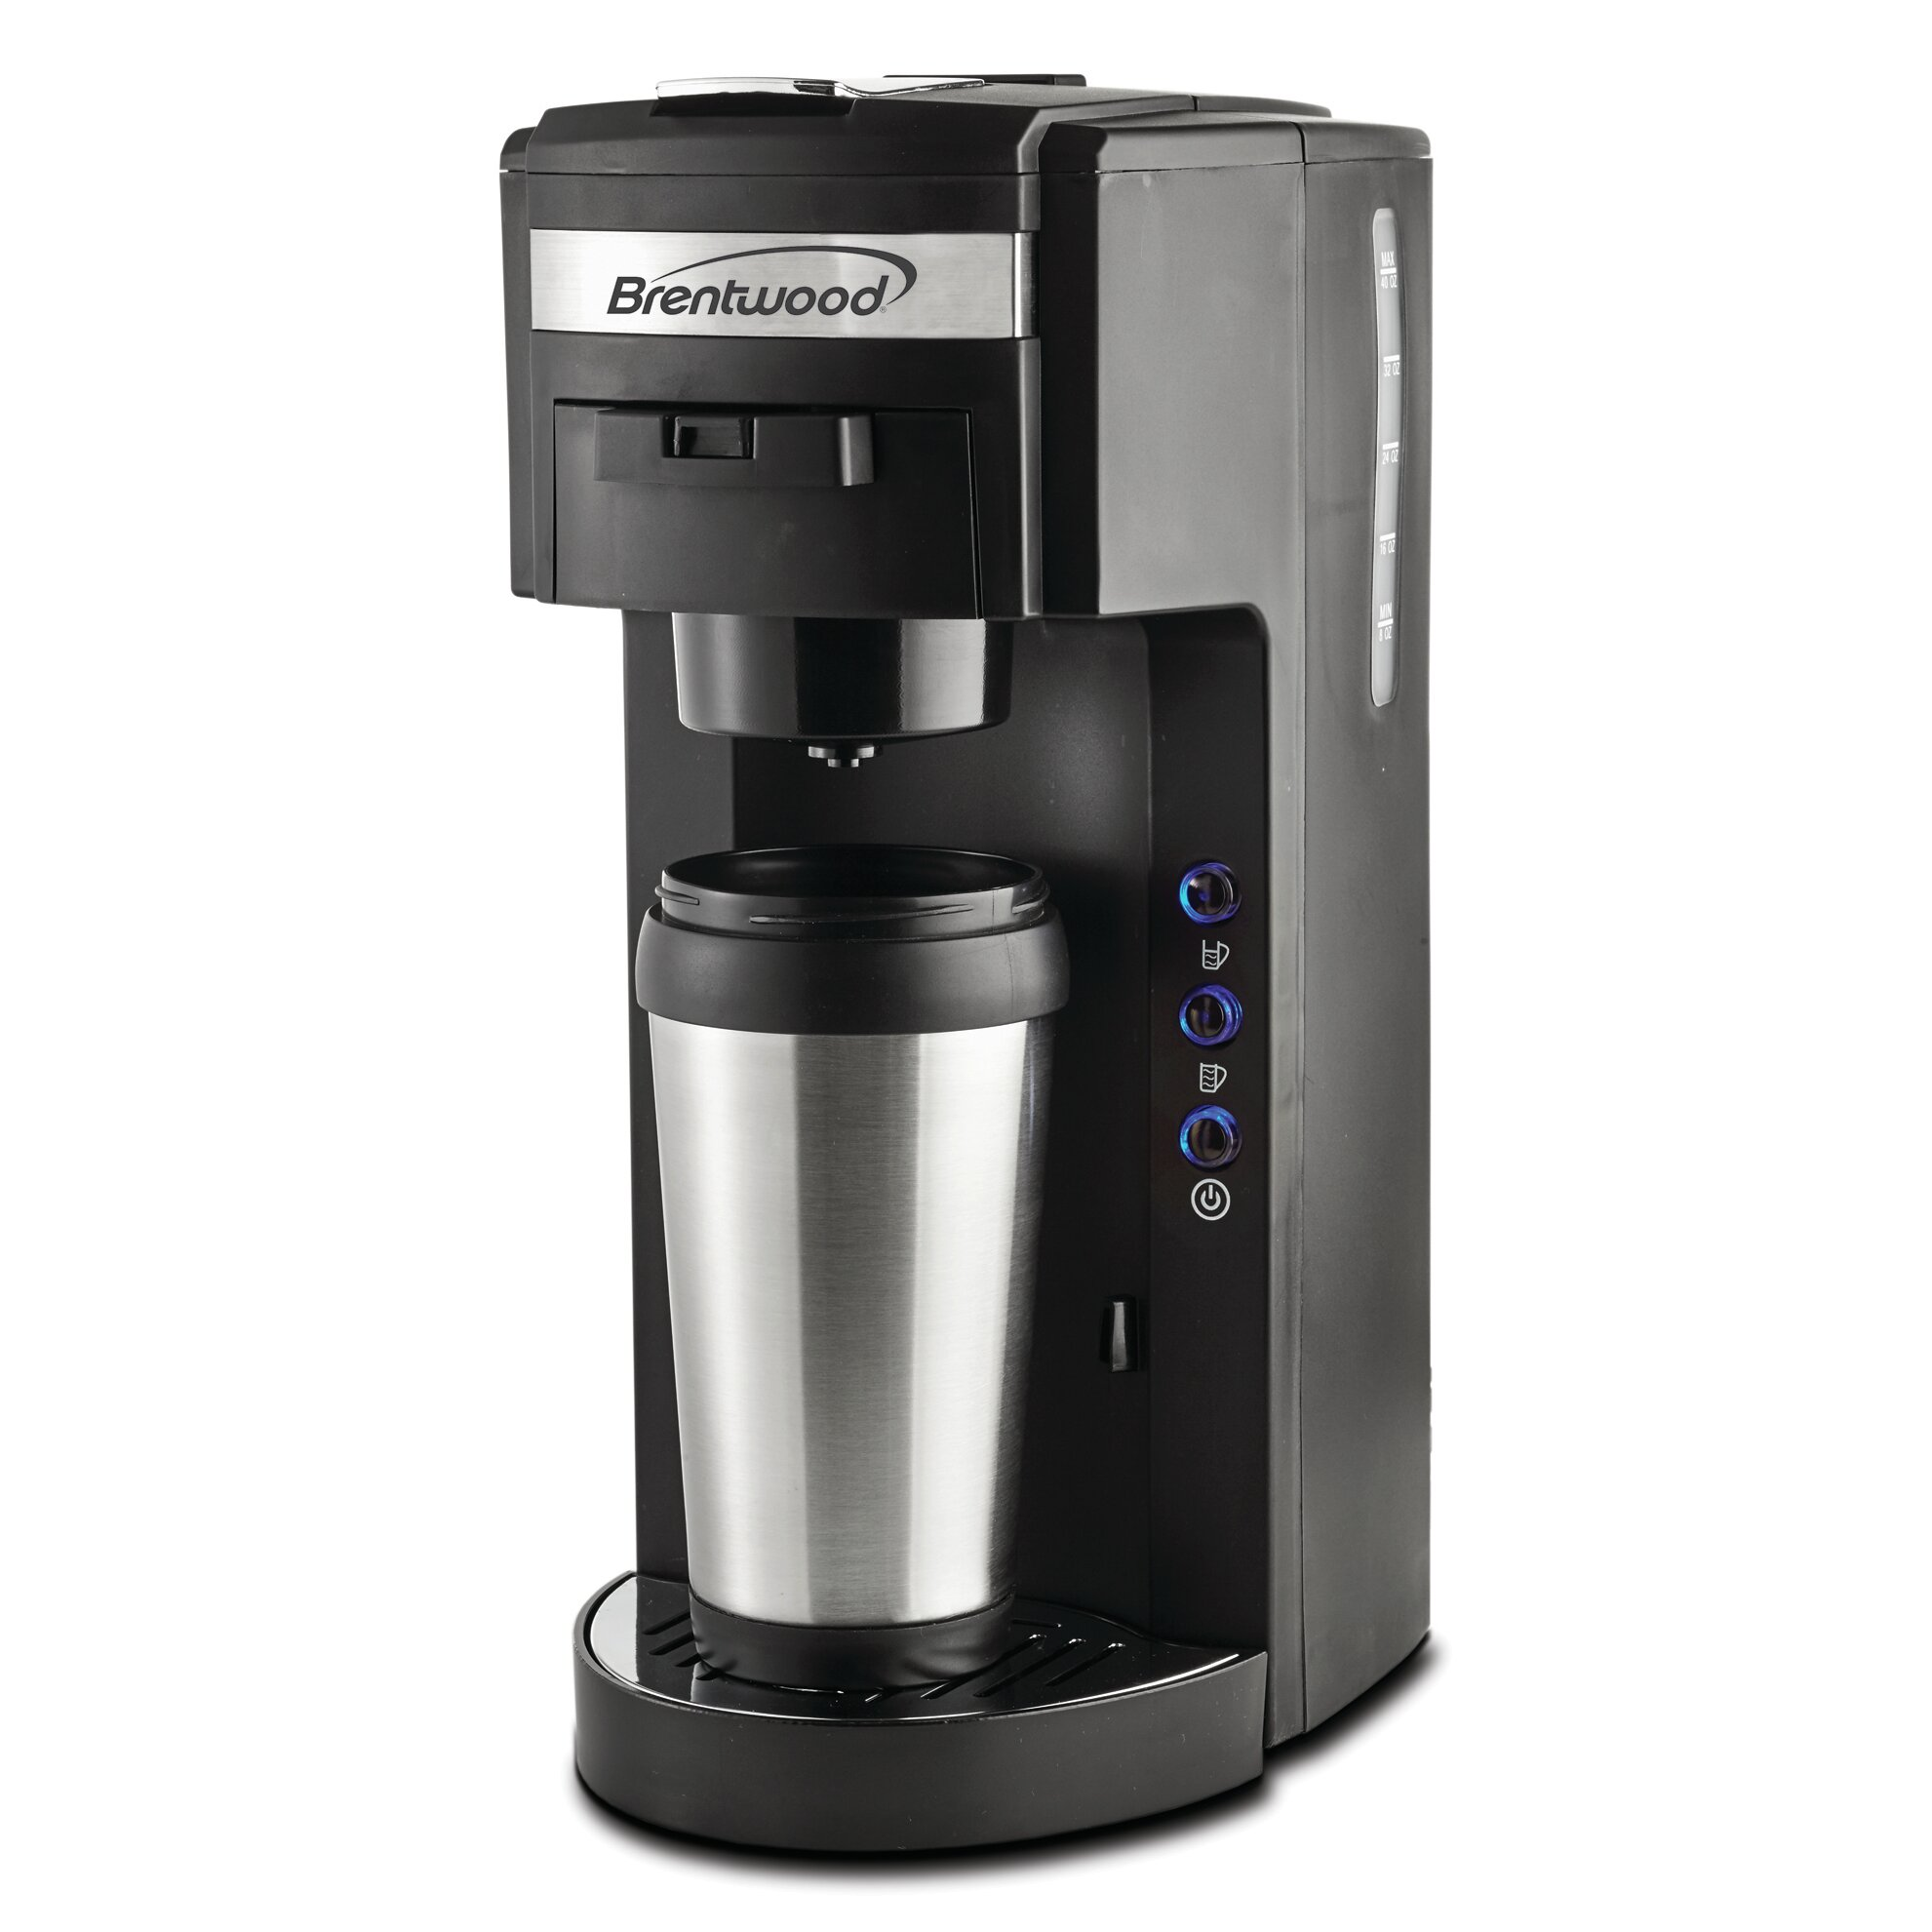 Brentwood k cup coffee maker wayfair for Apartment size coffee maker